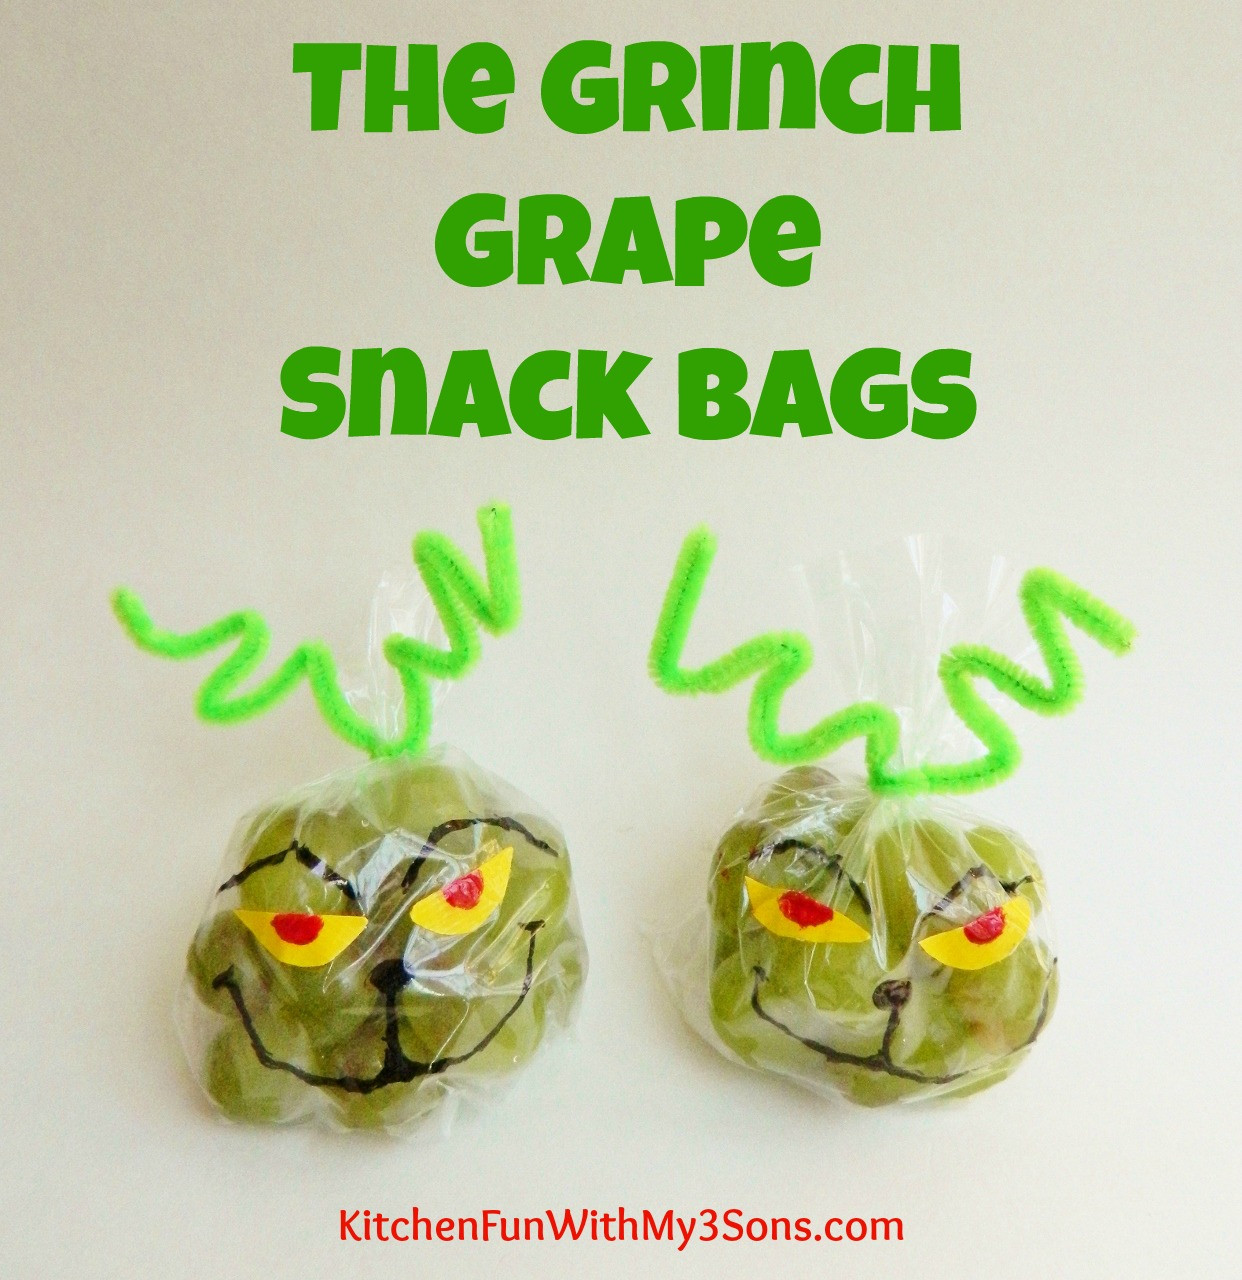 Healthy Christmas Snacks For School Parties  The Grinch Grape Snack Bags for Christmas Class Parties at